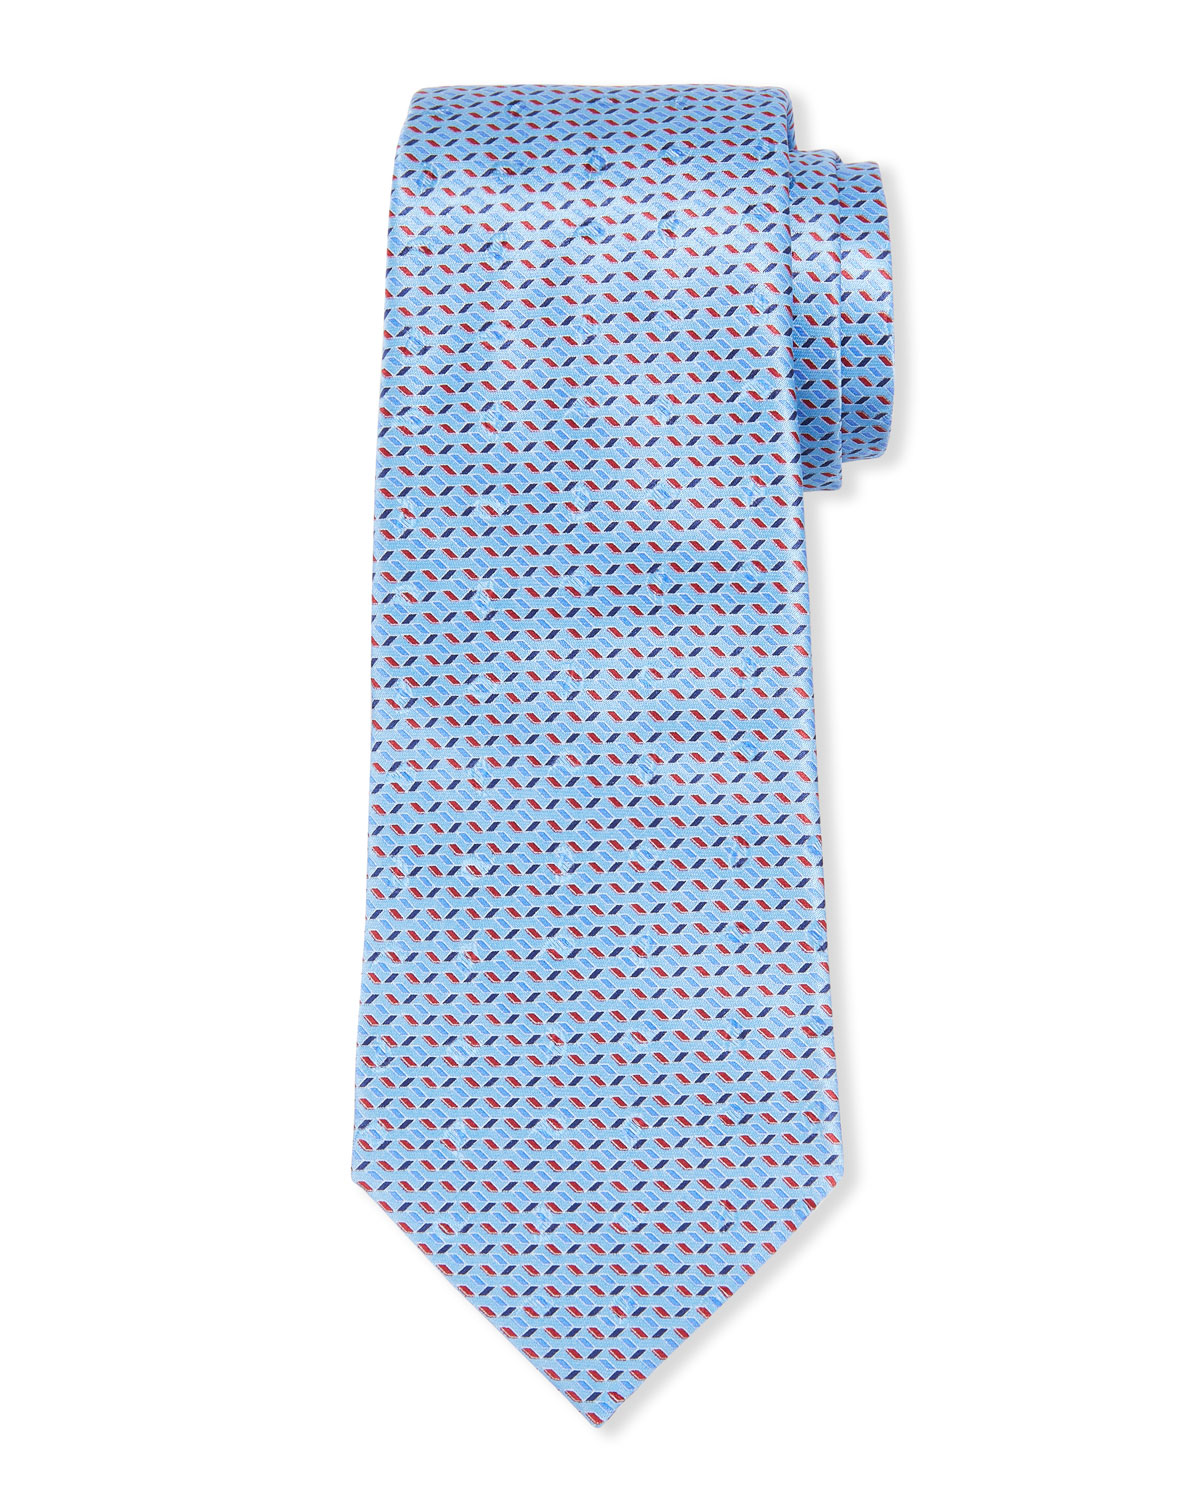 Ermenegildo Zegna Large-Scale Paisley Tie, Light Blue